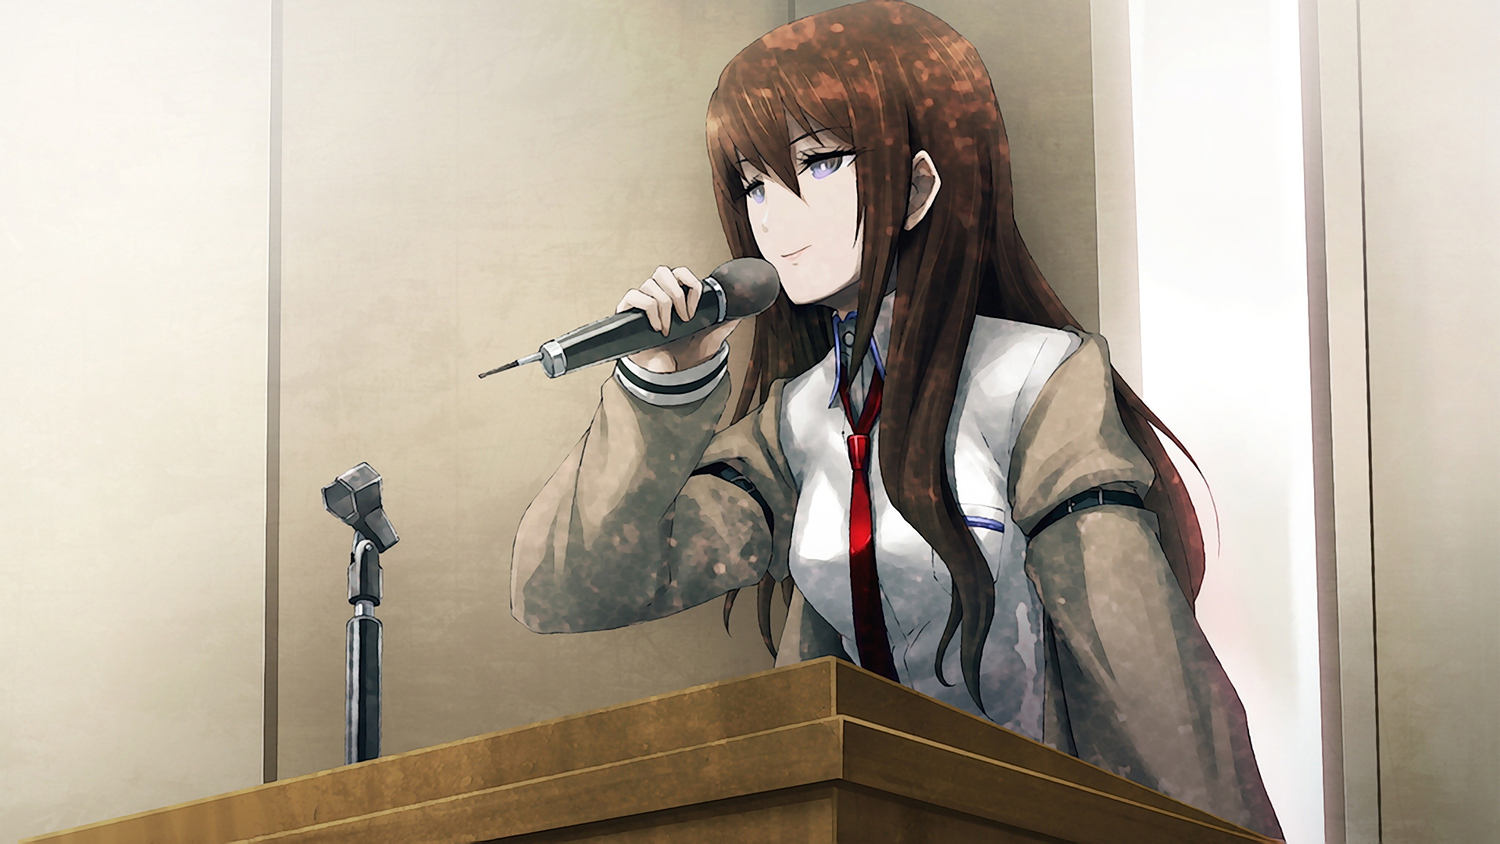 game_cg huke makise_kurisu steins;gate